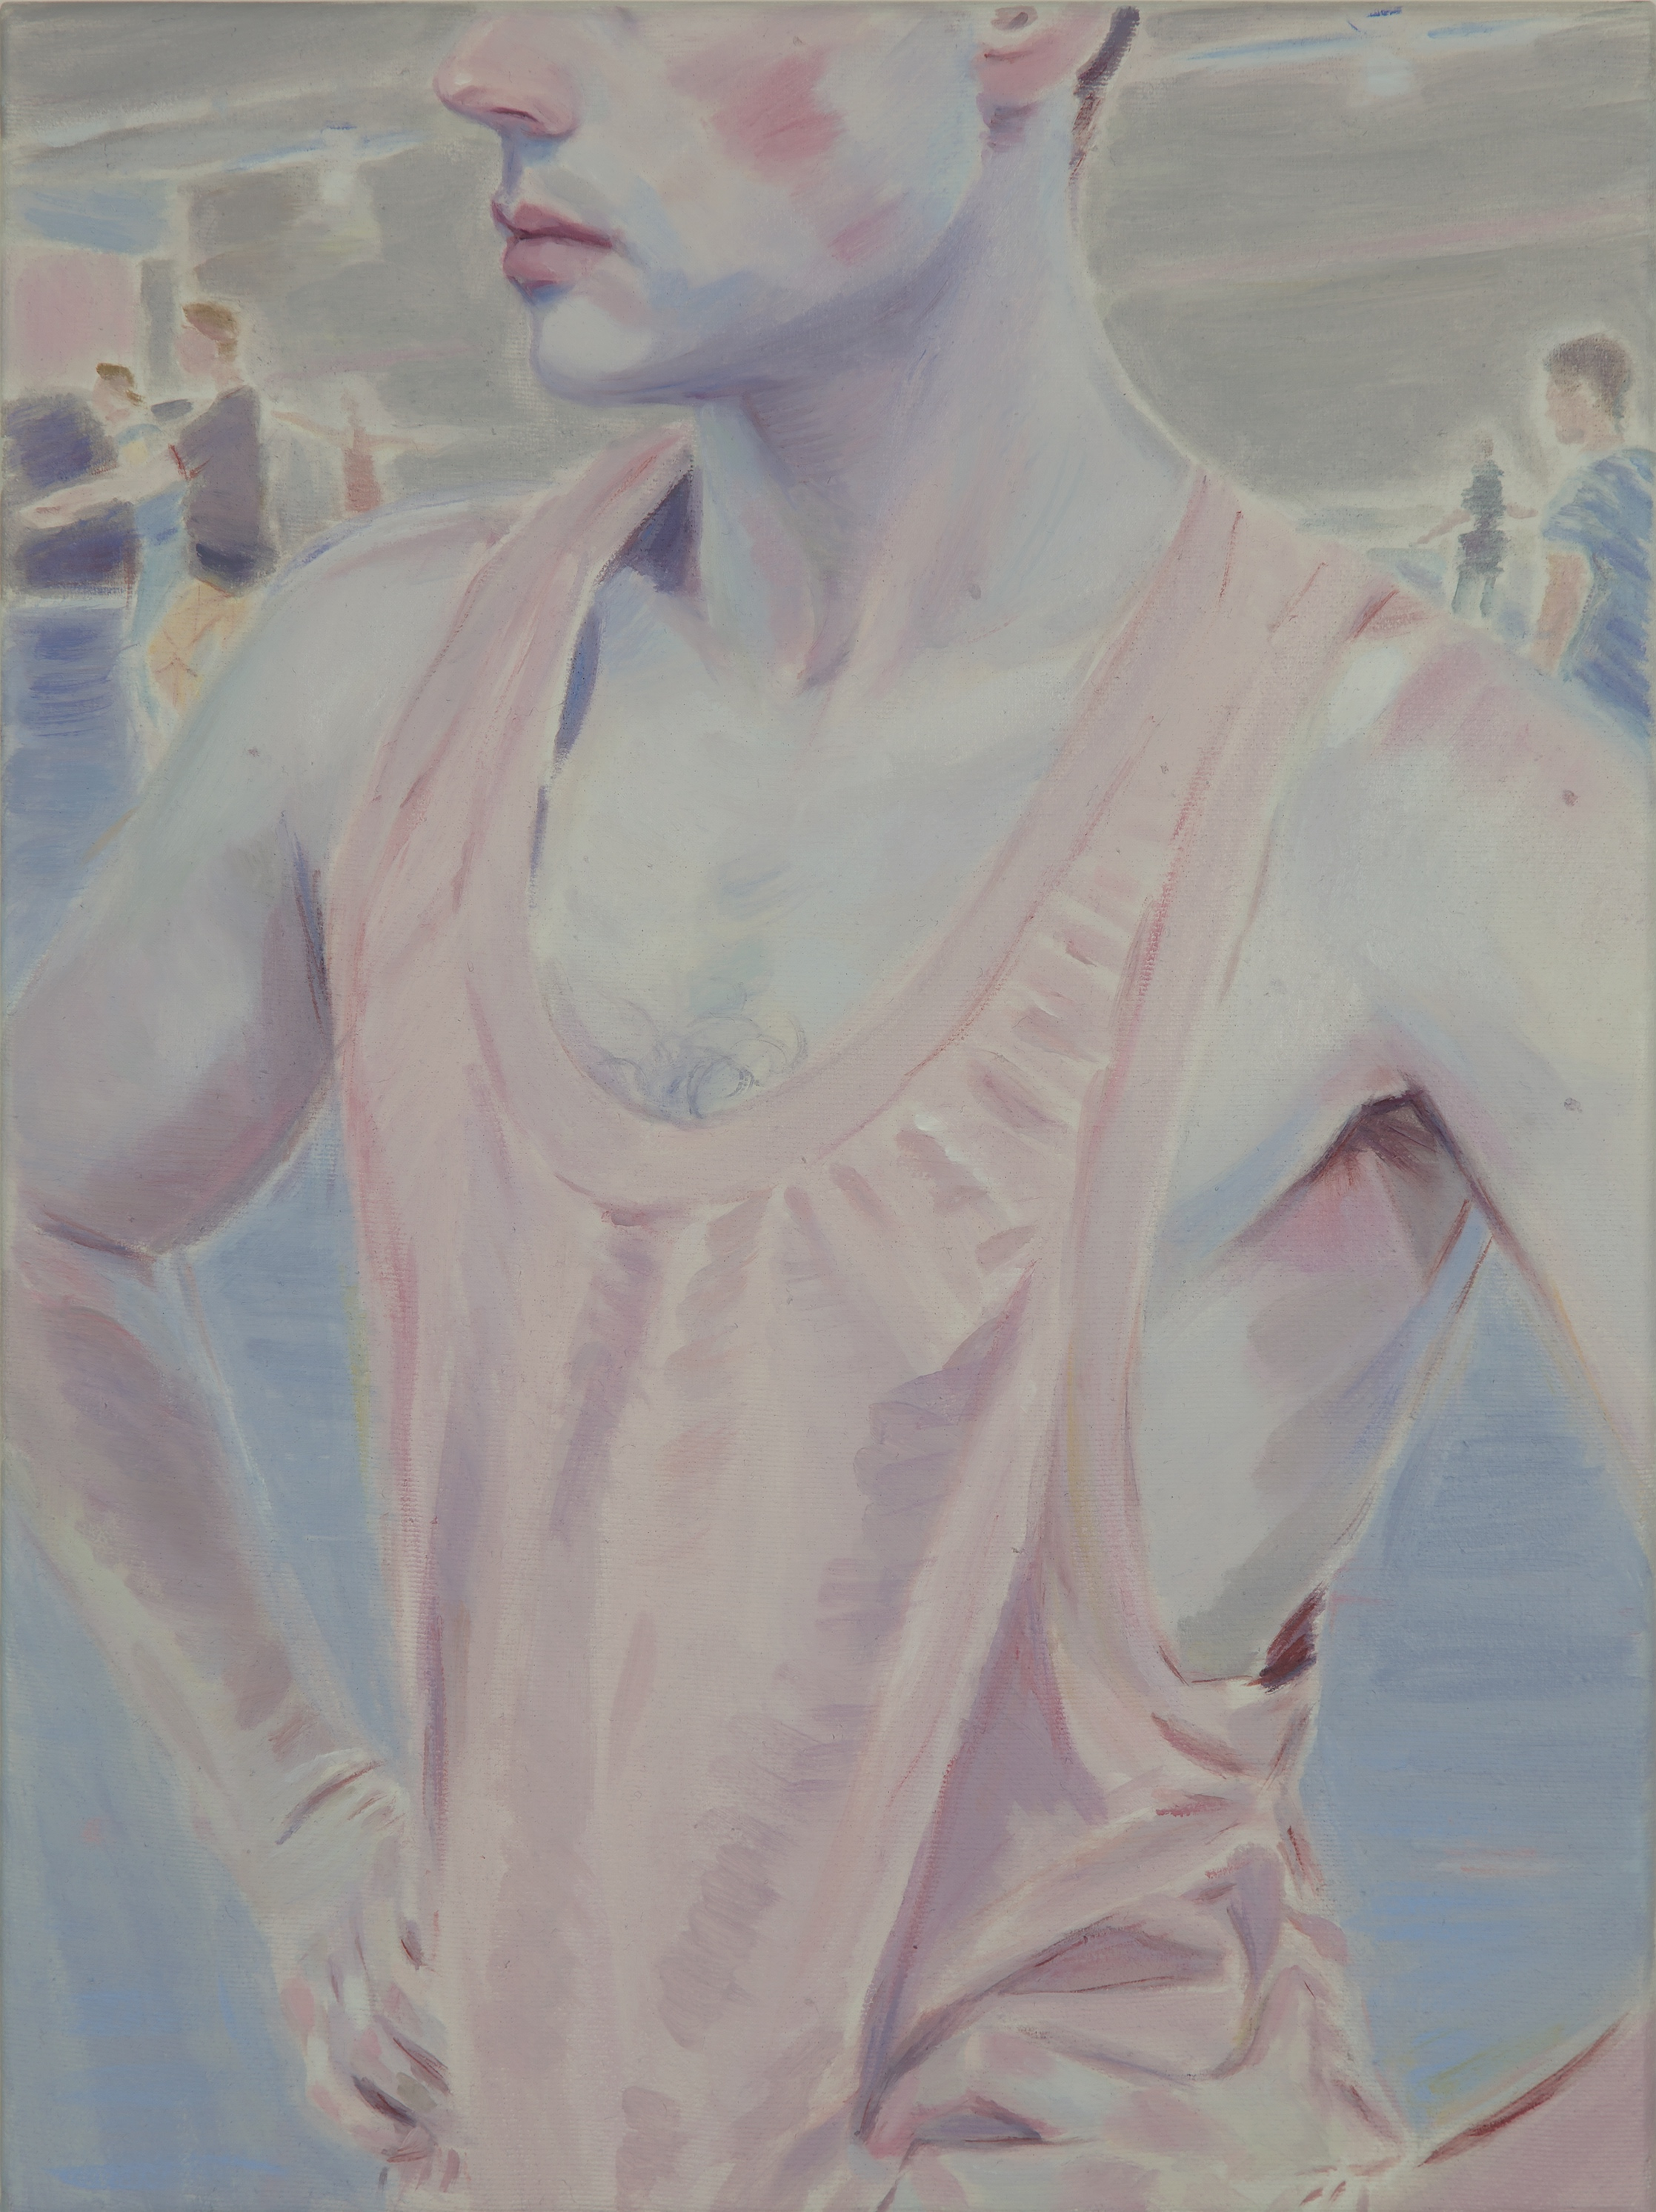 Kris Knight,  Suss Out , 2017, oil on canvas, 16 x 12 inches SOLD